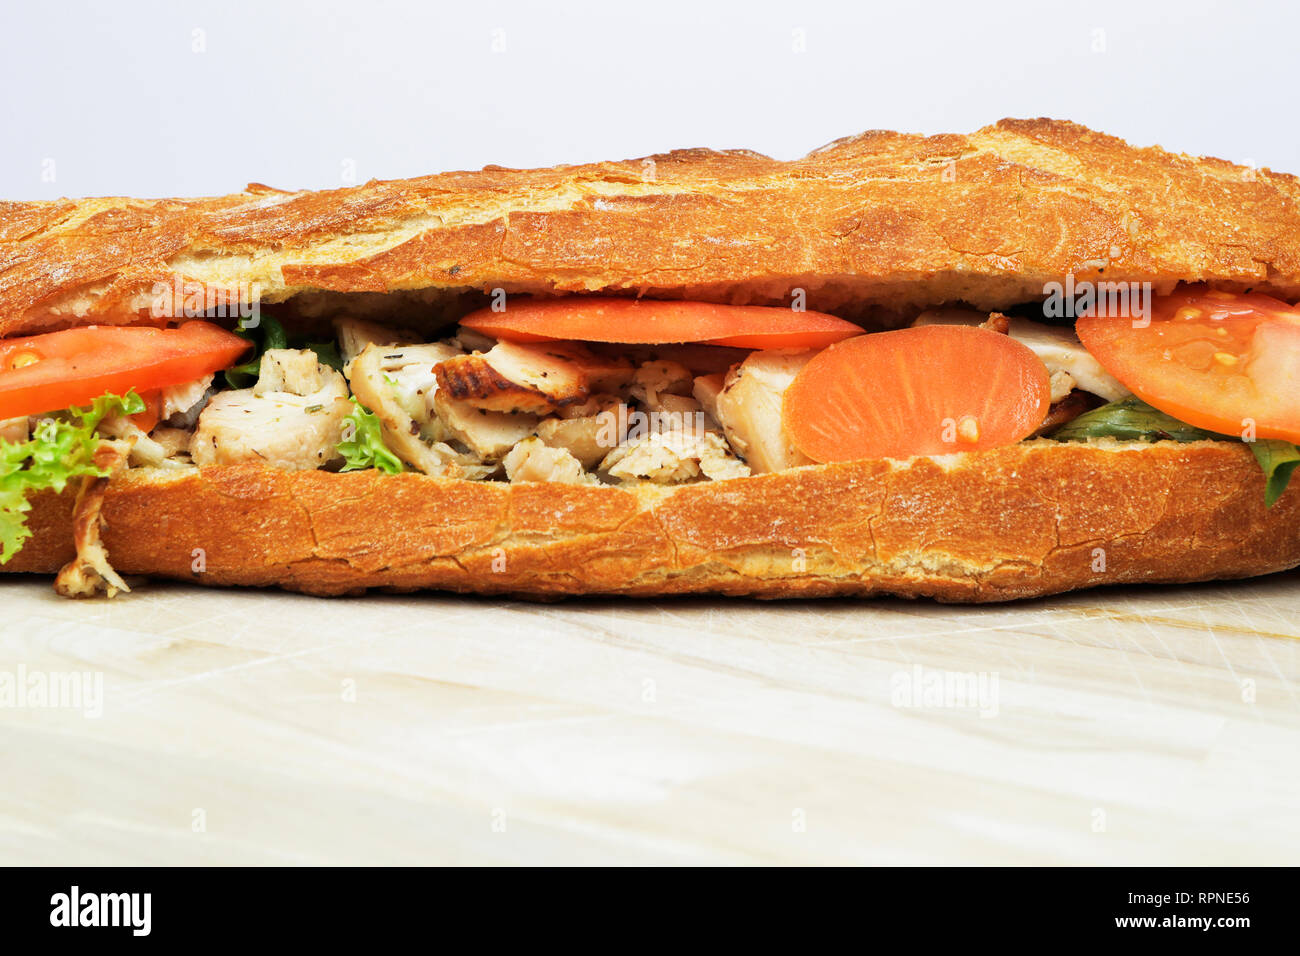 Fresh chicken sandwich. French baguette. France - Stock Image